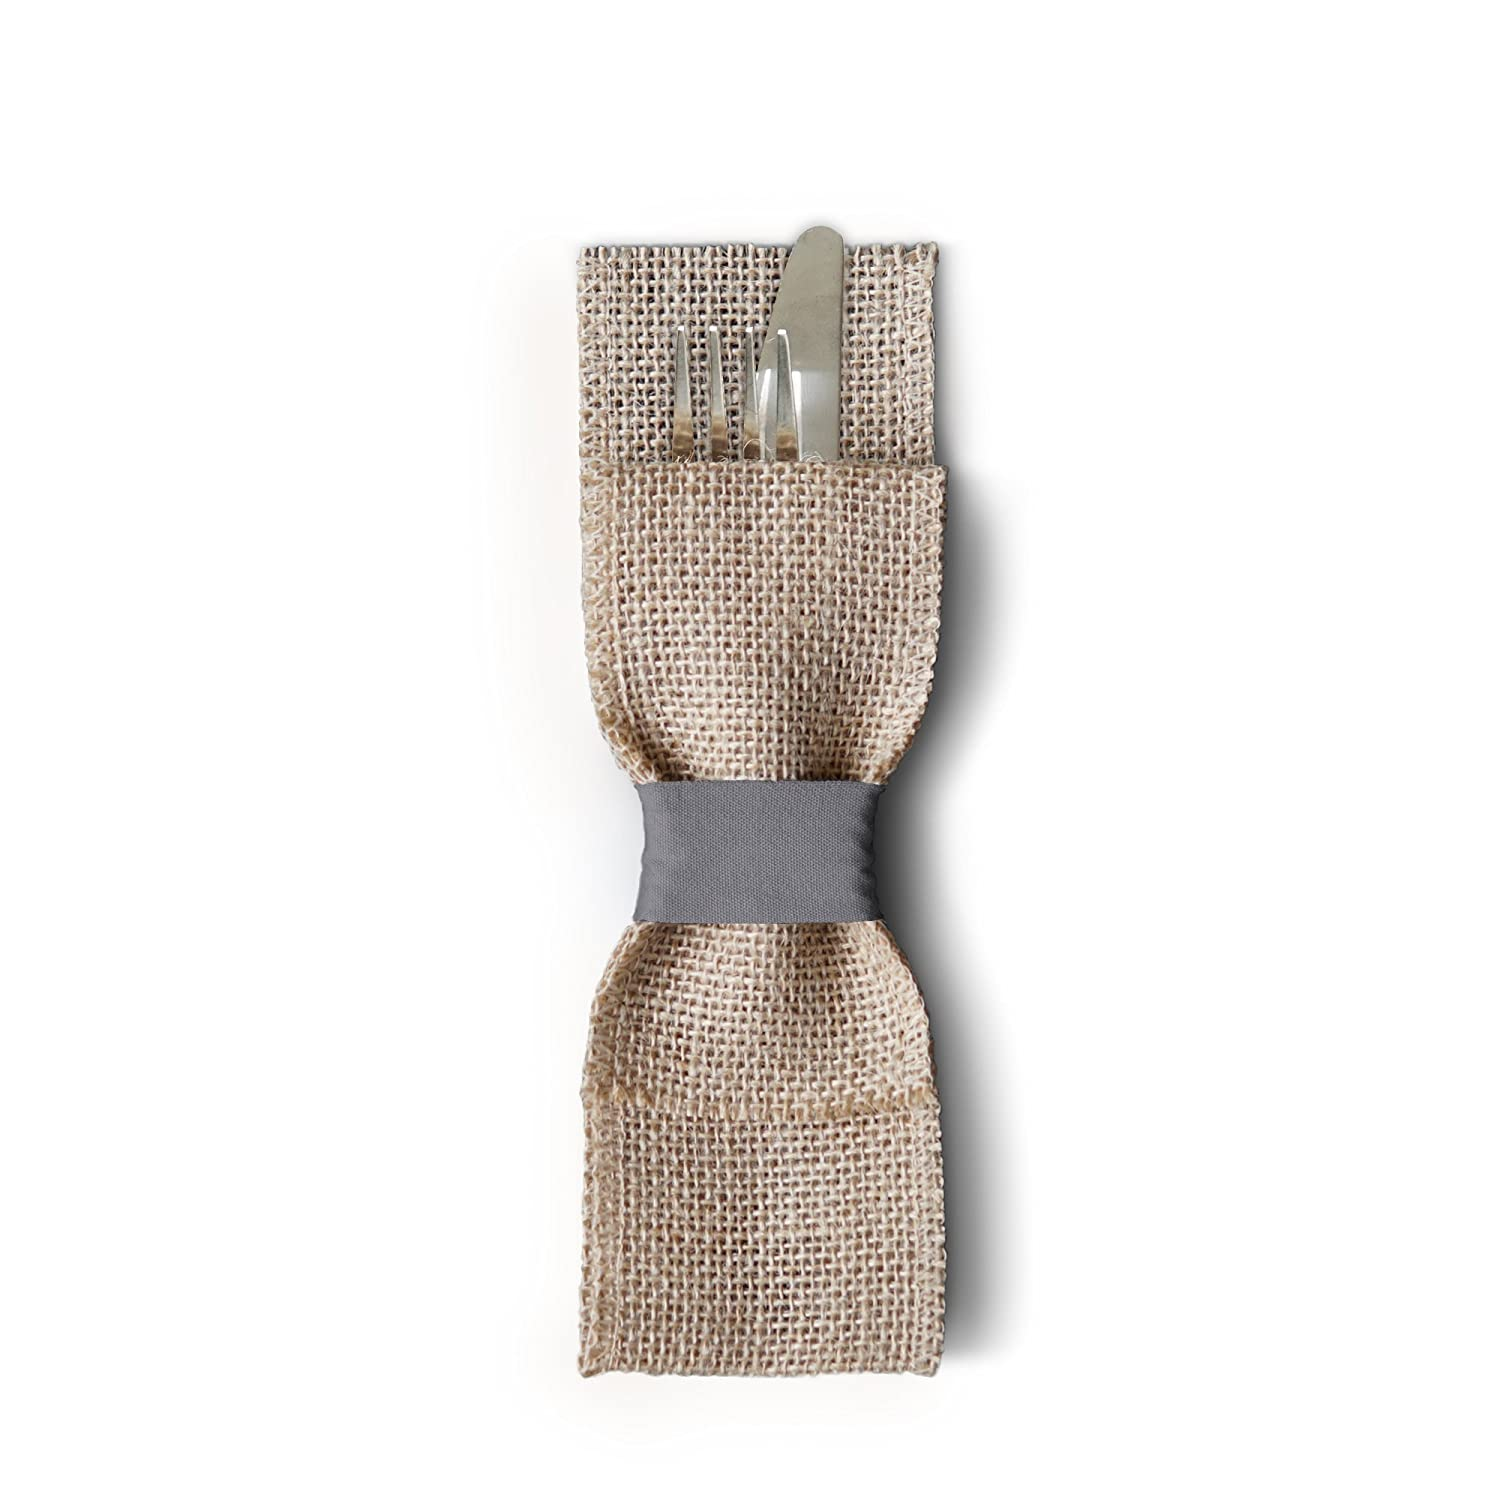 Wild Leaf Tableware Burlap Silverware Pockets (Pack of 12, Pebble Grey). Rustic & Elegant Cutlery Pouches That are Great for Vintage Weddings, Dinner Parties & Table Setting Décor